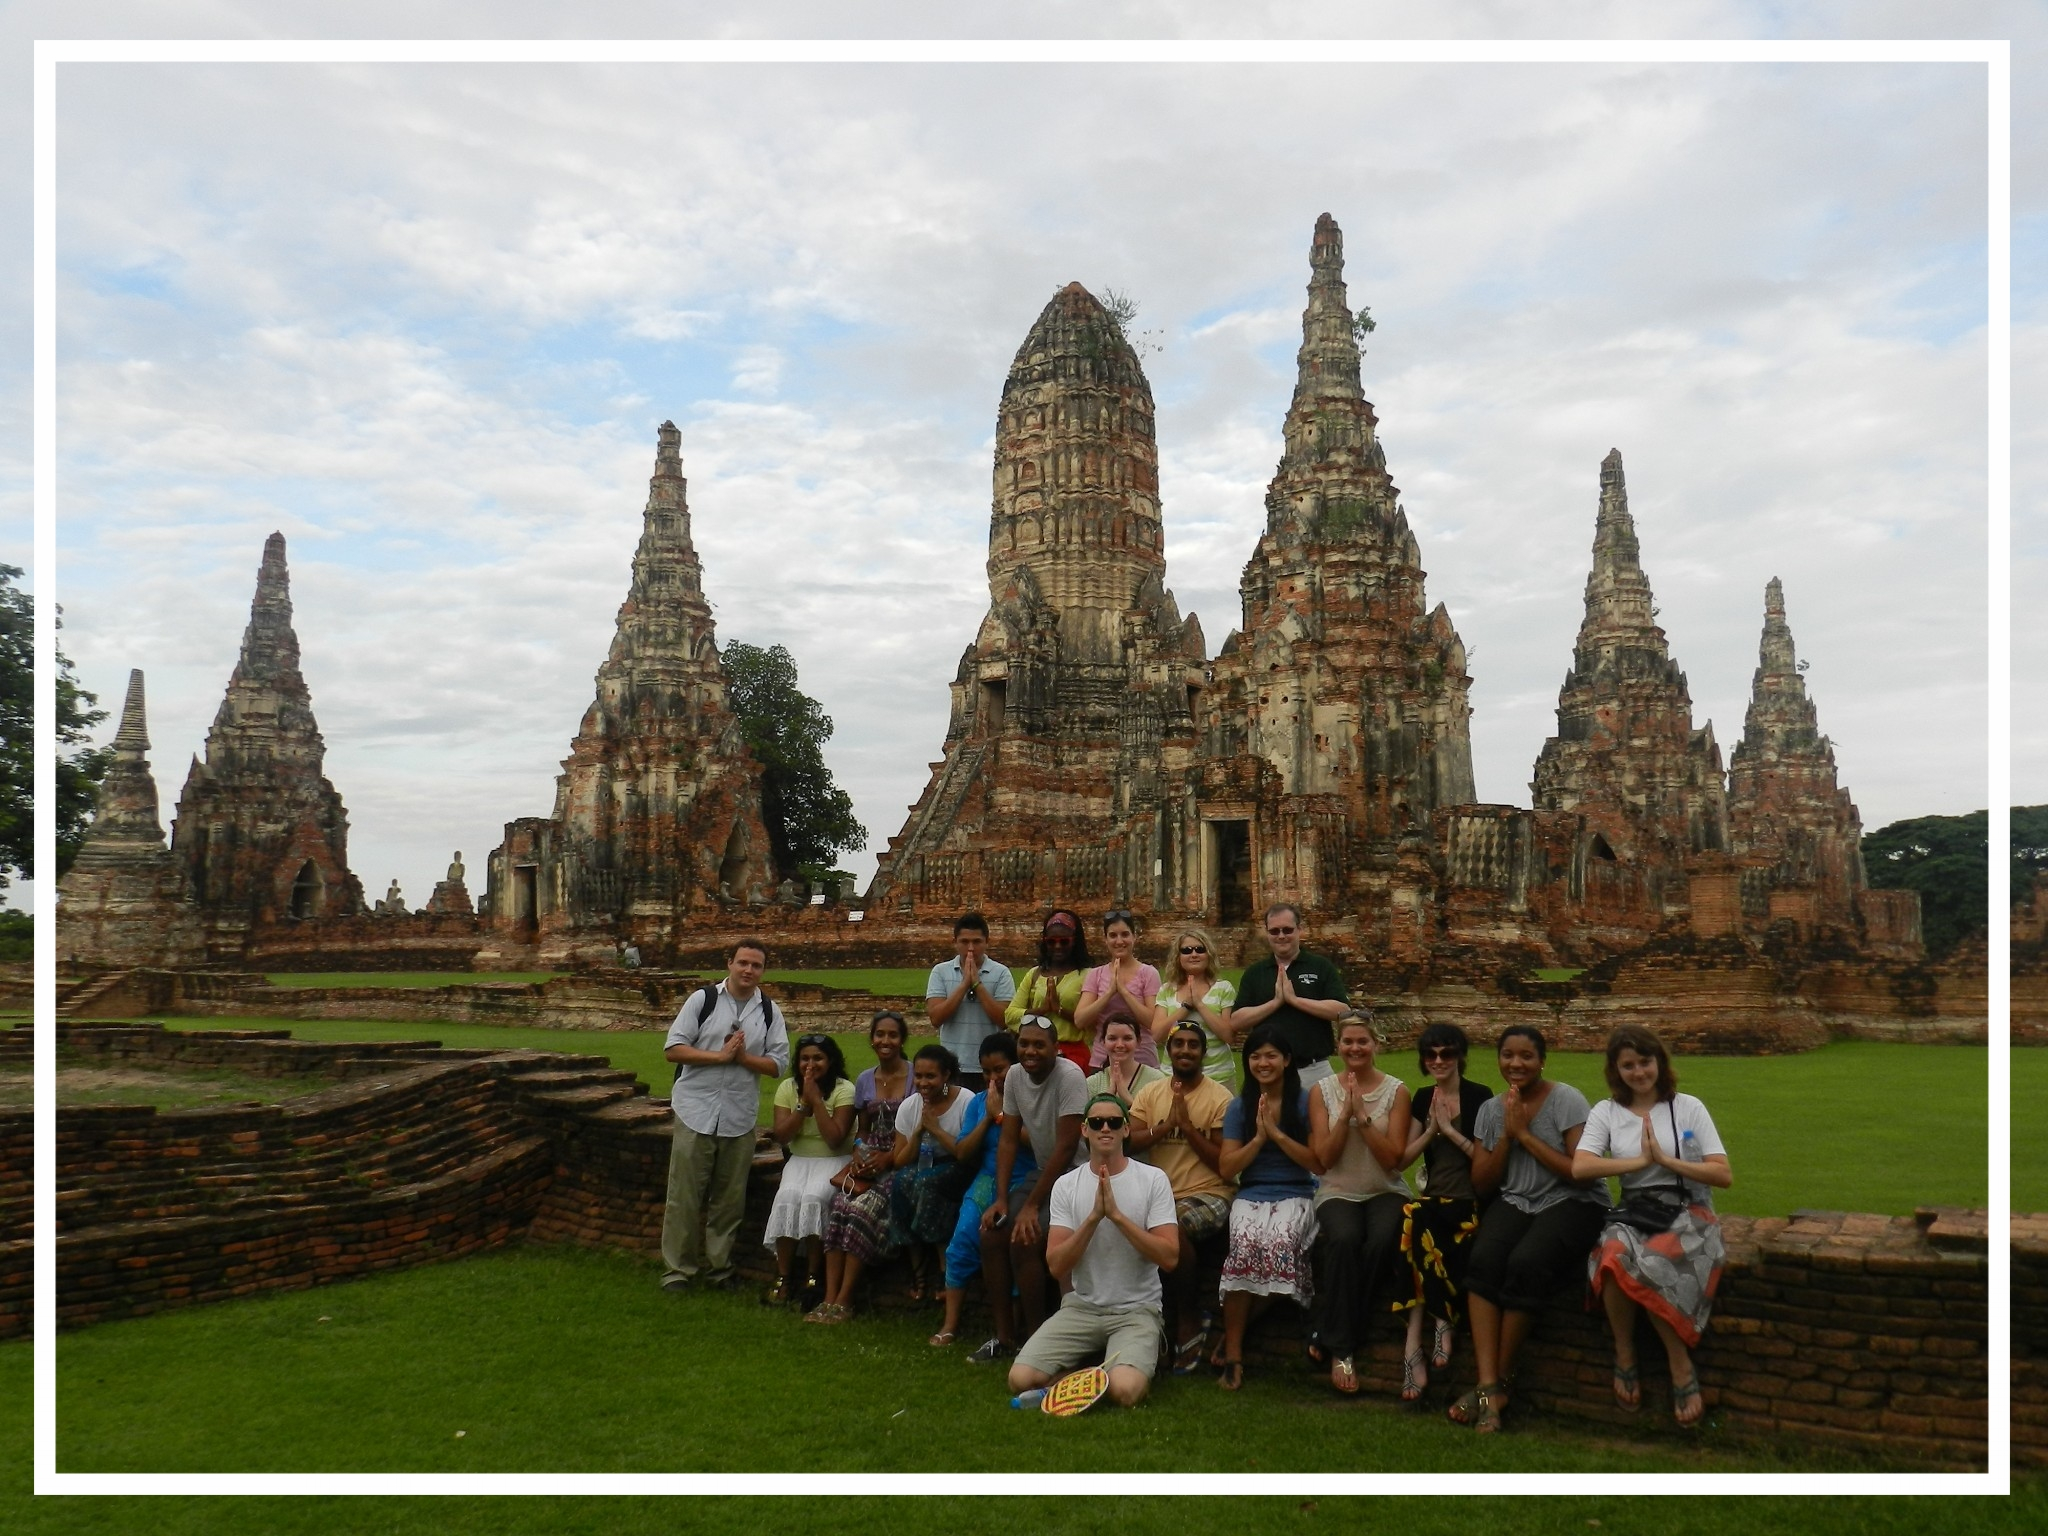 UNT SMHM 2800: Study Abroad in Ayutthaya, Thailand, Hosted by Mahidol University